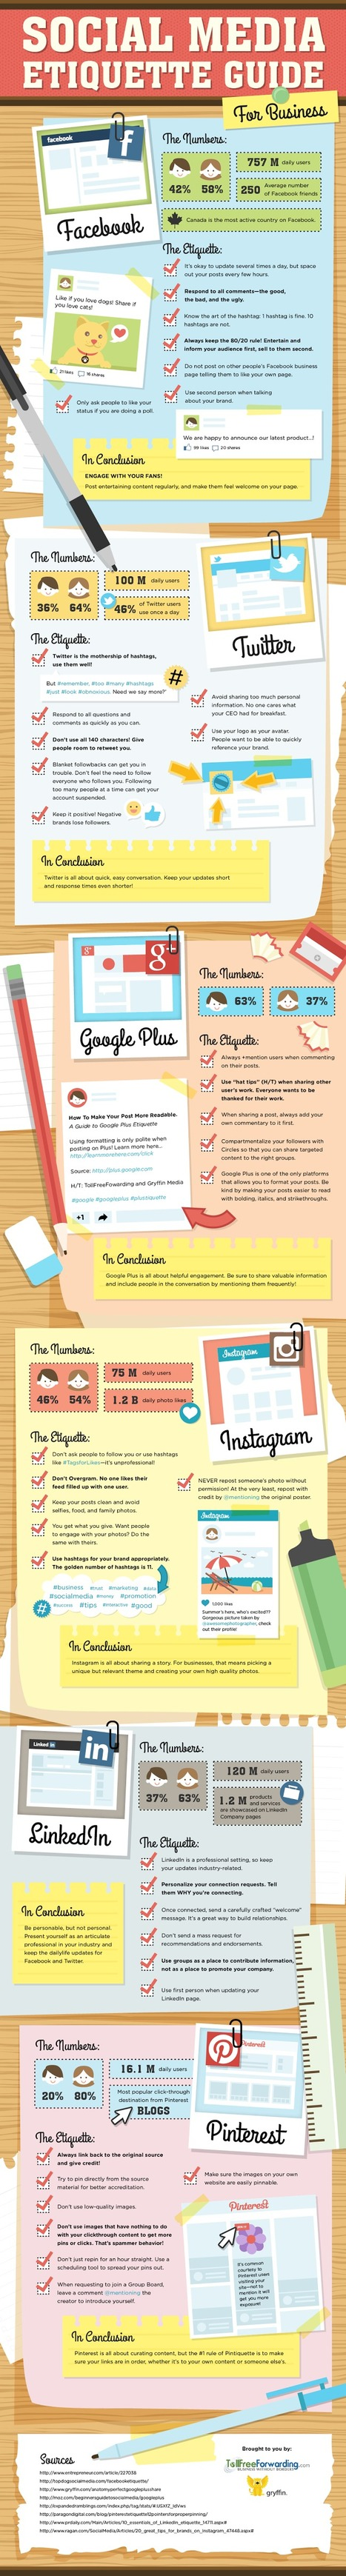 GooglePlus, Twitter, Instagram, Facebook, Pinterest - Social Media Etiquette Guide For Business - #infographic | Data | Scoop.it